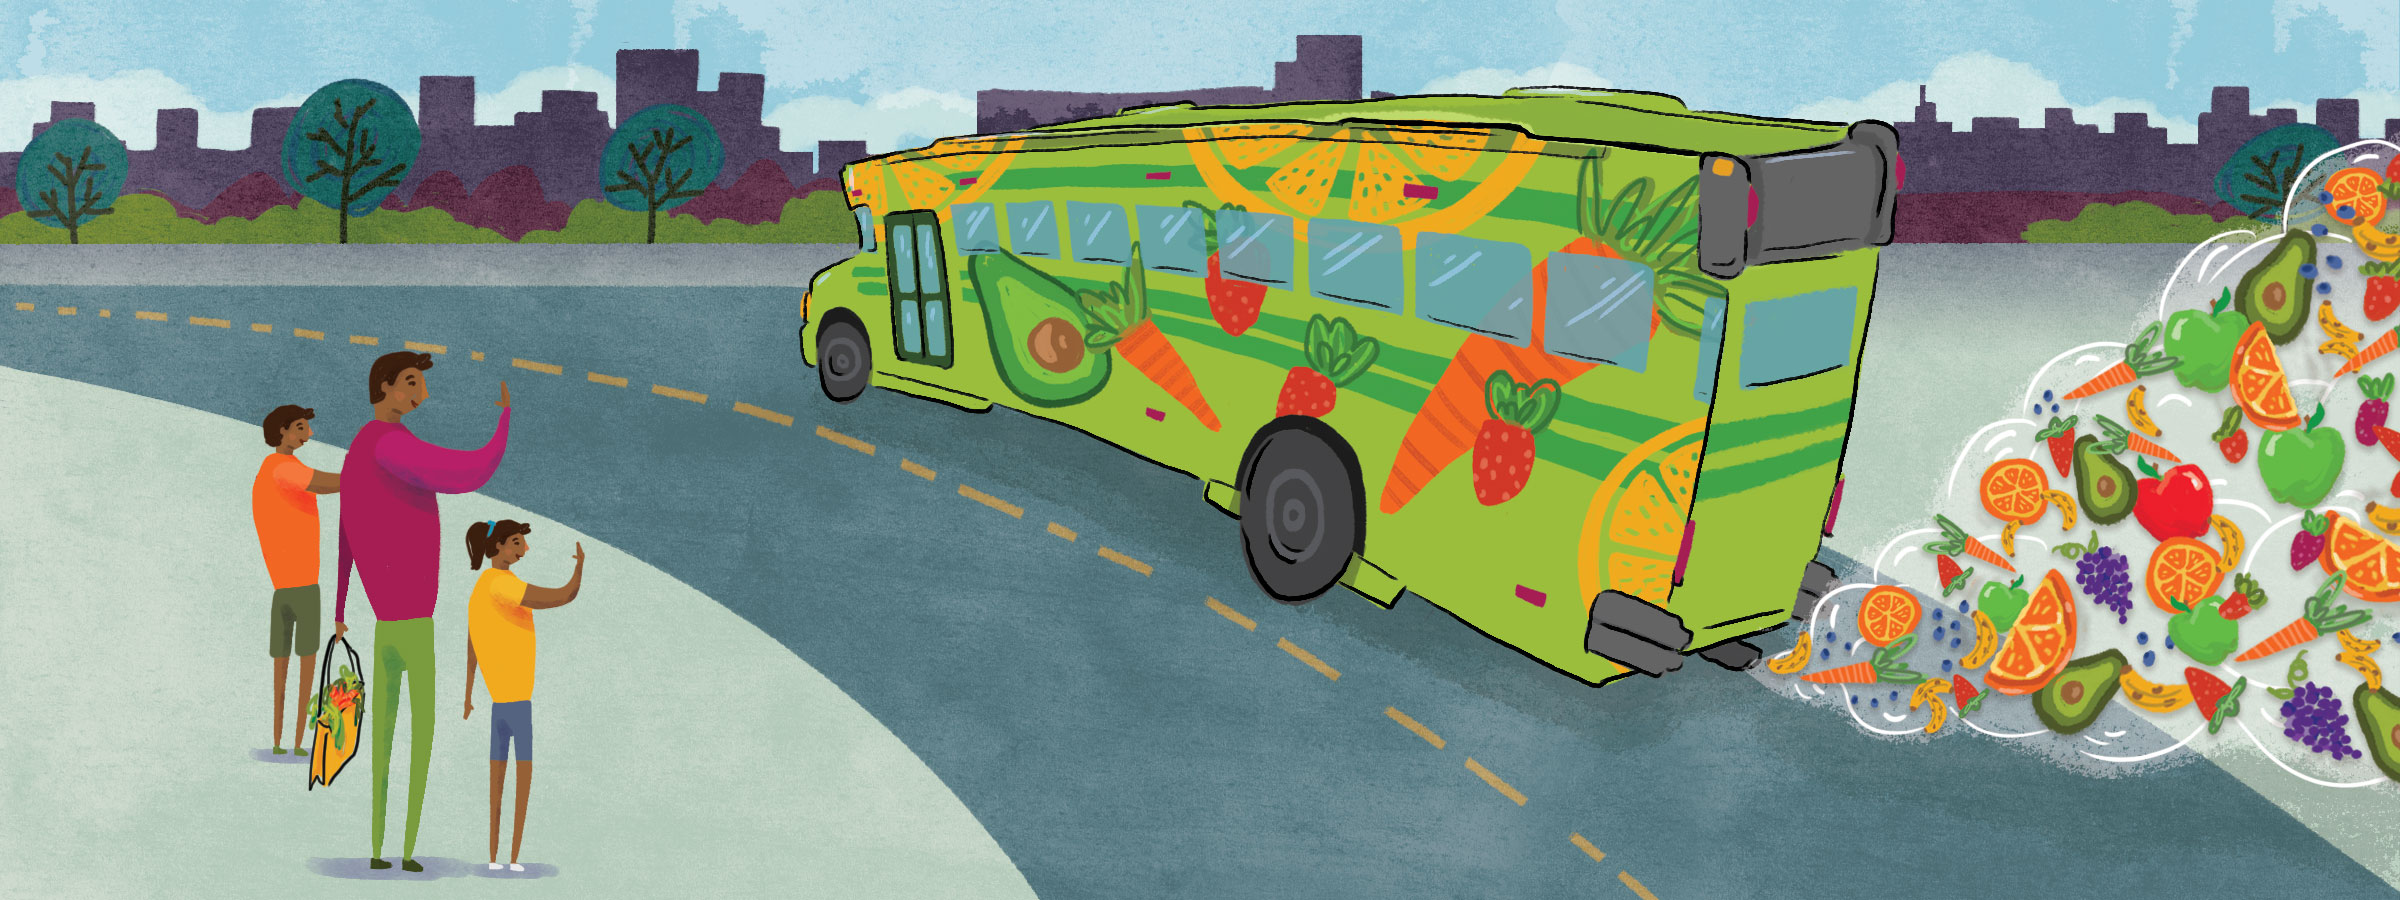 image of a colorful bus with produce